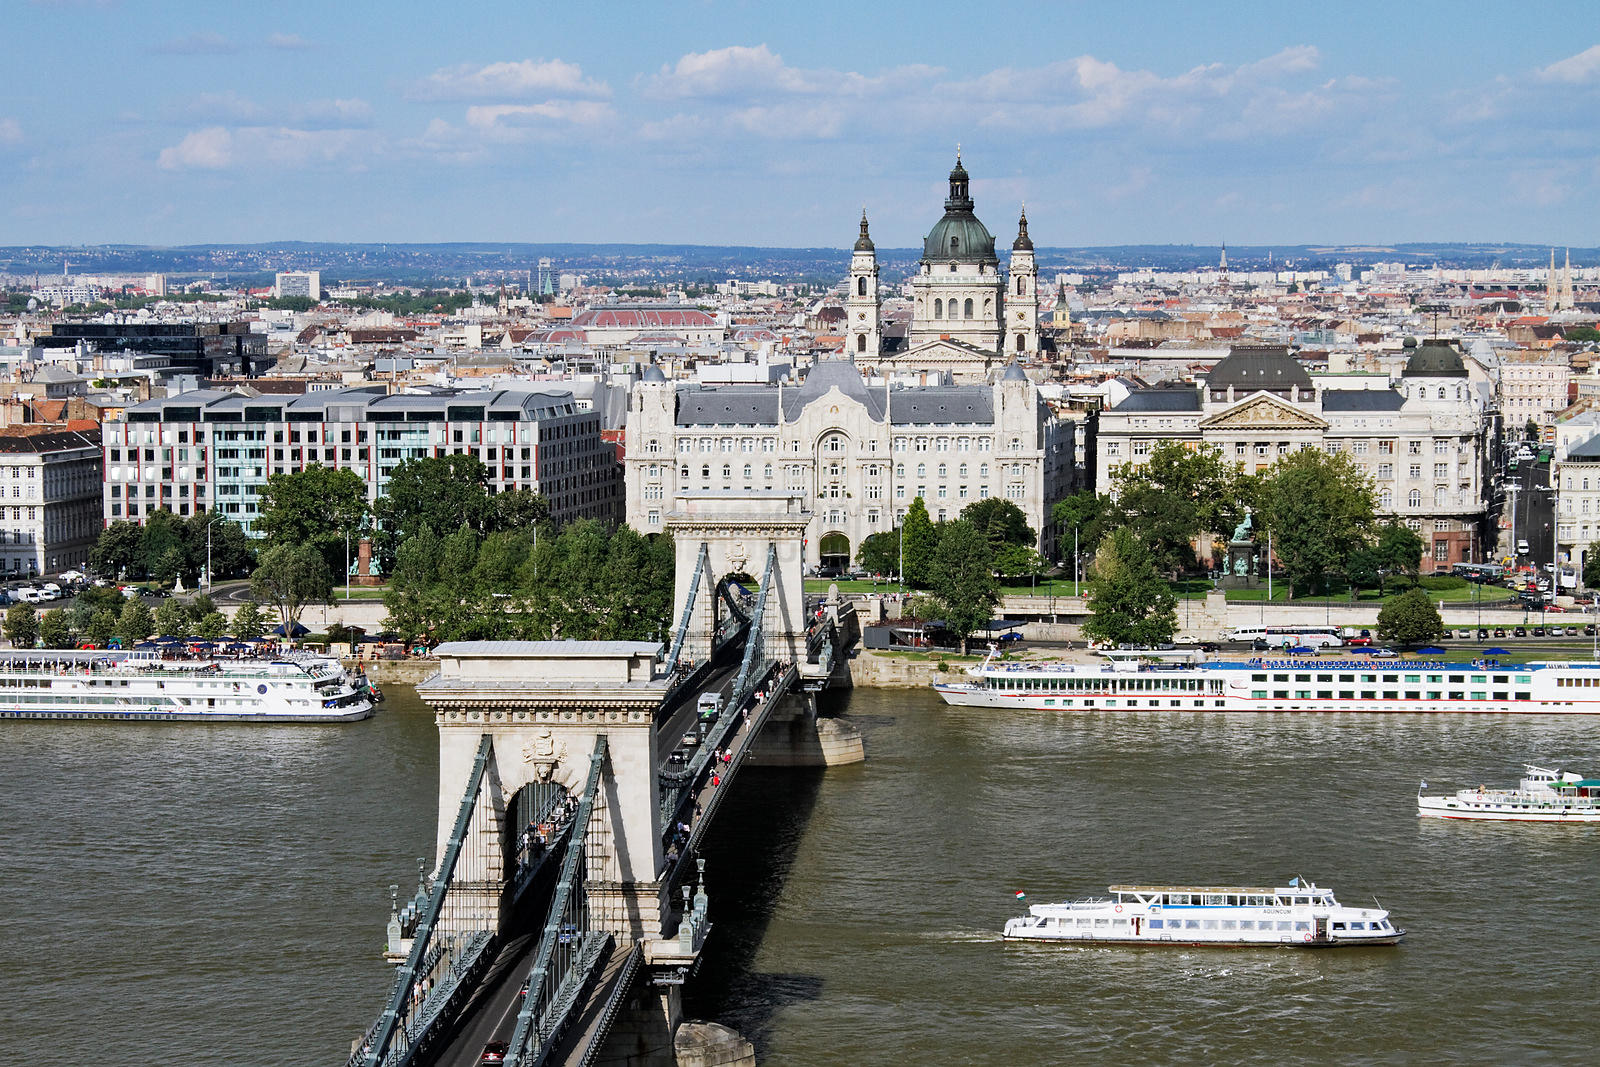 Elevated View of the Chain Bridge and the River Danube